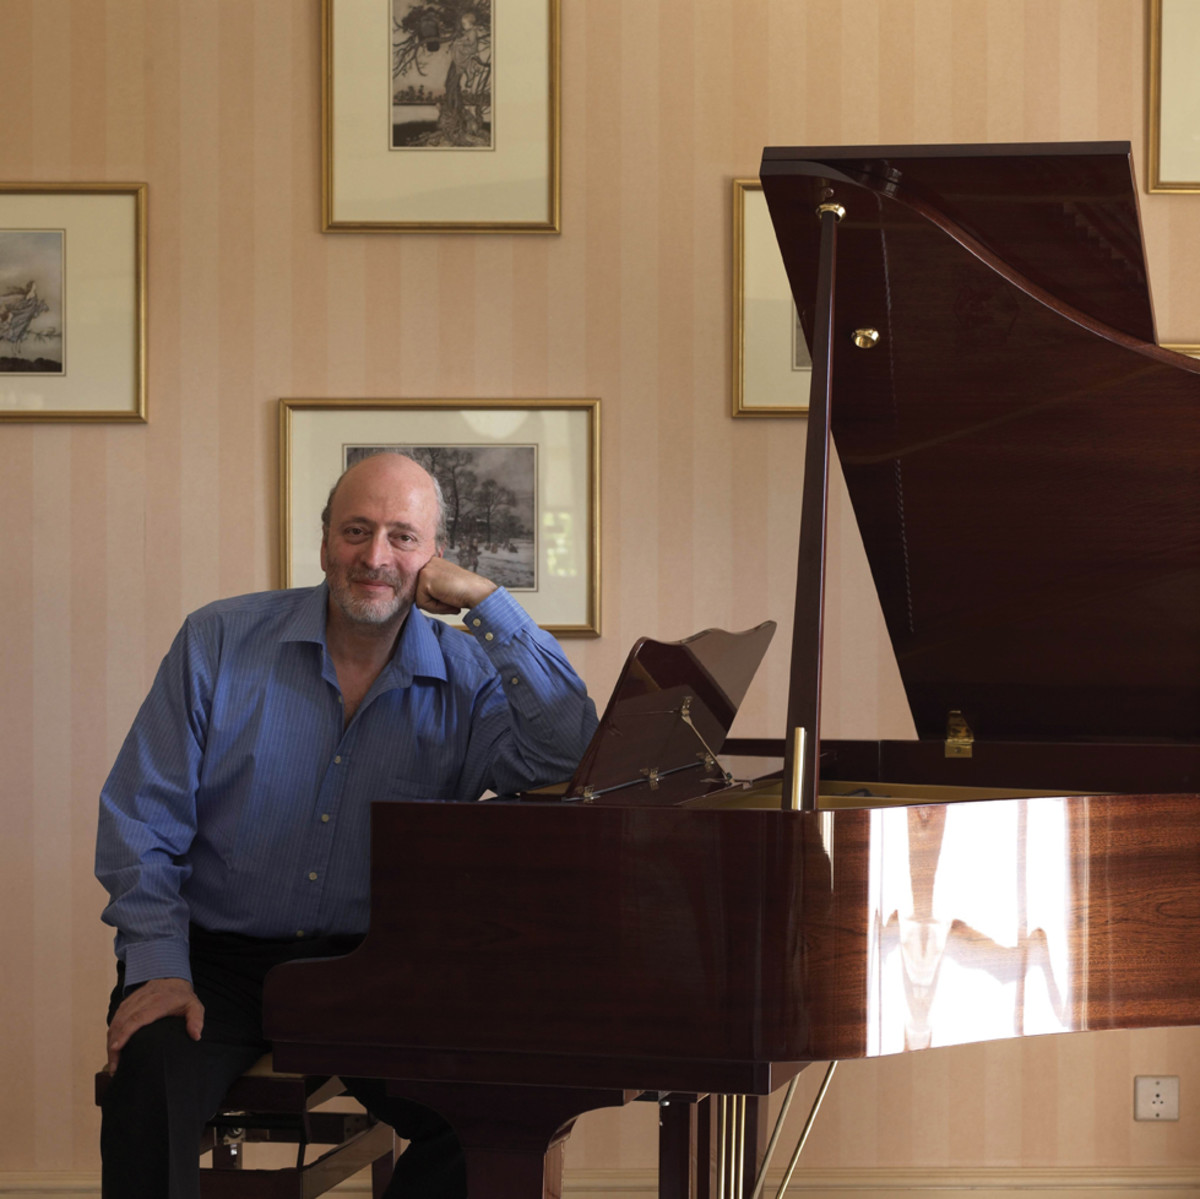 Eric Woolfson at home with his piano. Publicity image.